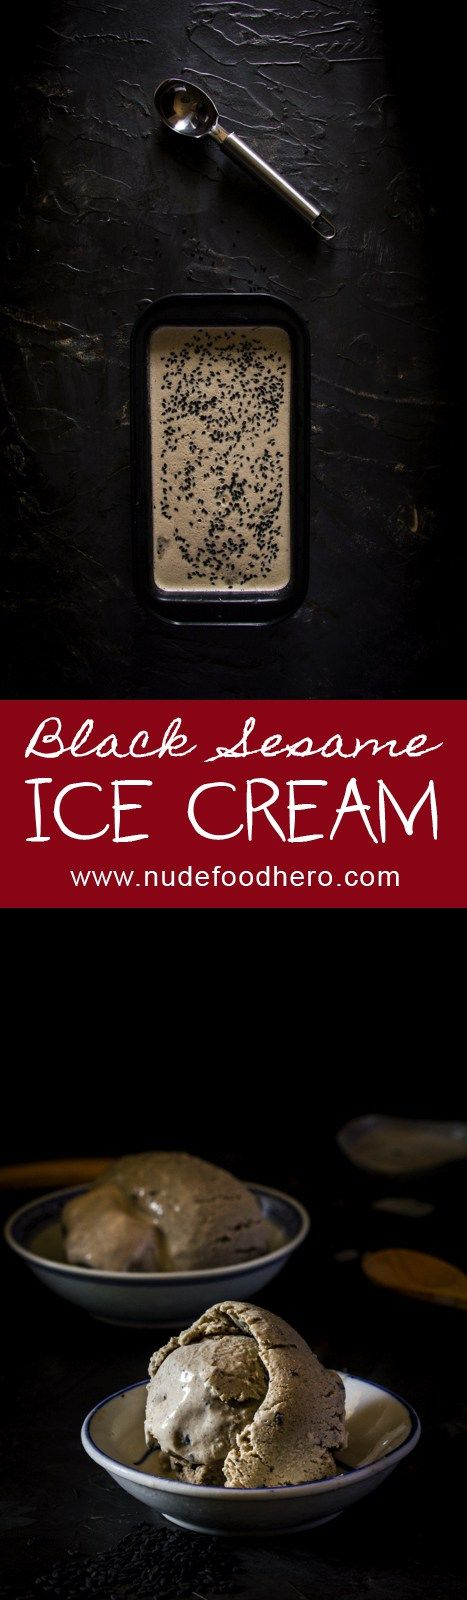 ... on Pinterest | Roasted figs, Toasted coconut and Lavender ice cream